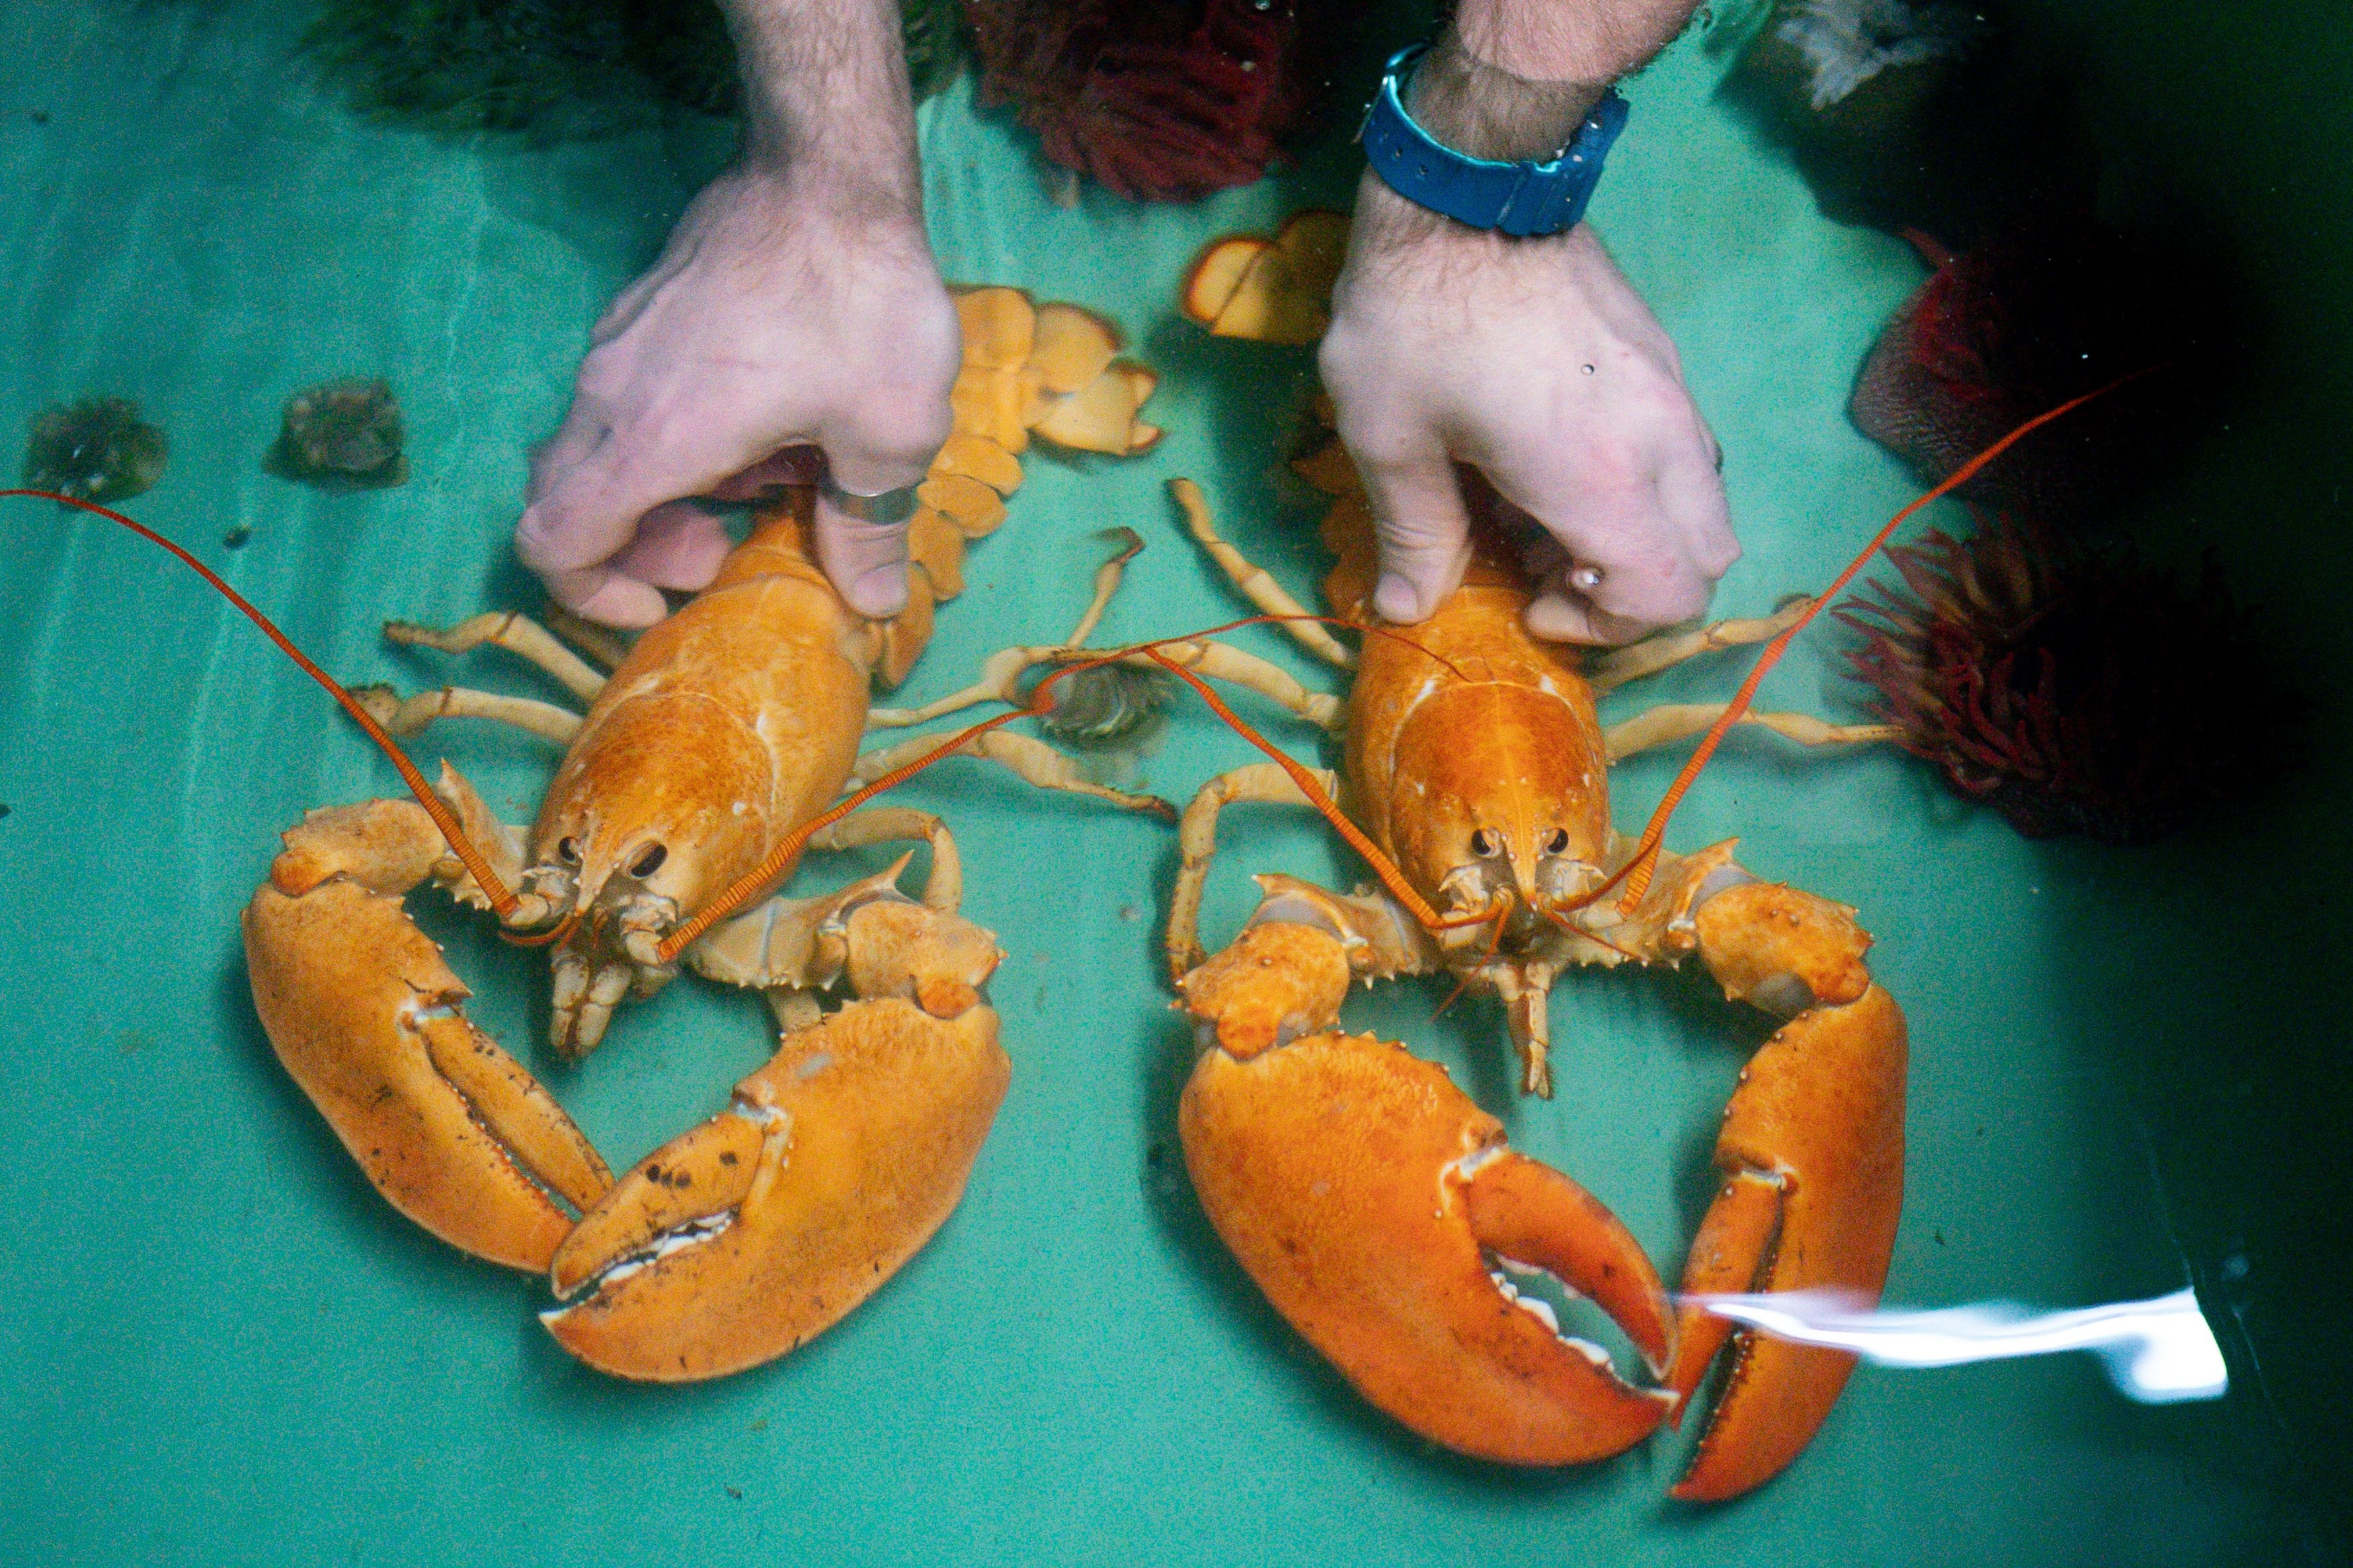 <p>Two rare orange Canadian lobsters settle into their new home at the National SEA LIFE Centre, Birmingham, after they were rescued by a shopper at a fishmongers in Leicester. Caterer Joseph Lee spotted the pair at the fish counter in a branch of Makro Wholesale before convincing the fishmonger to donate them to the aquarium. The lobsters are so rare that only one in 30 million are caught, with the chance of finding a pair one in a billion. Picture date: Friday May 28, 2021.</p>